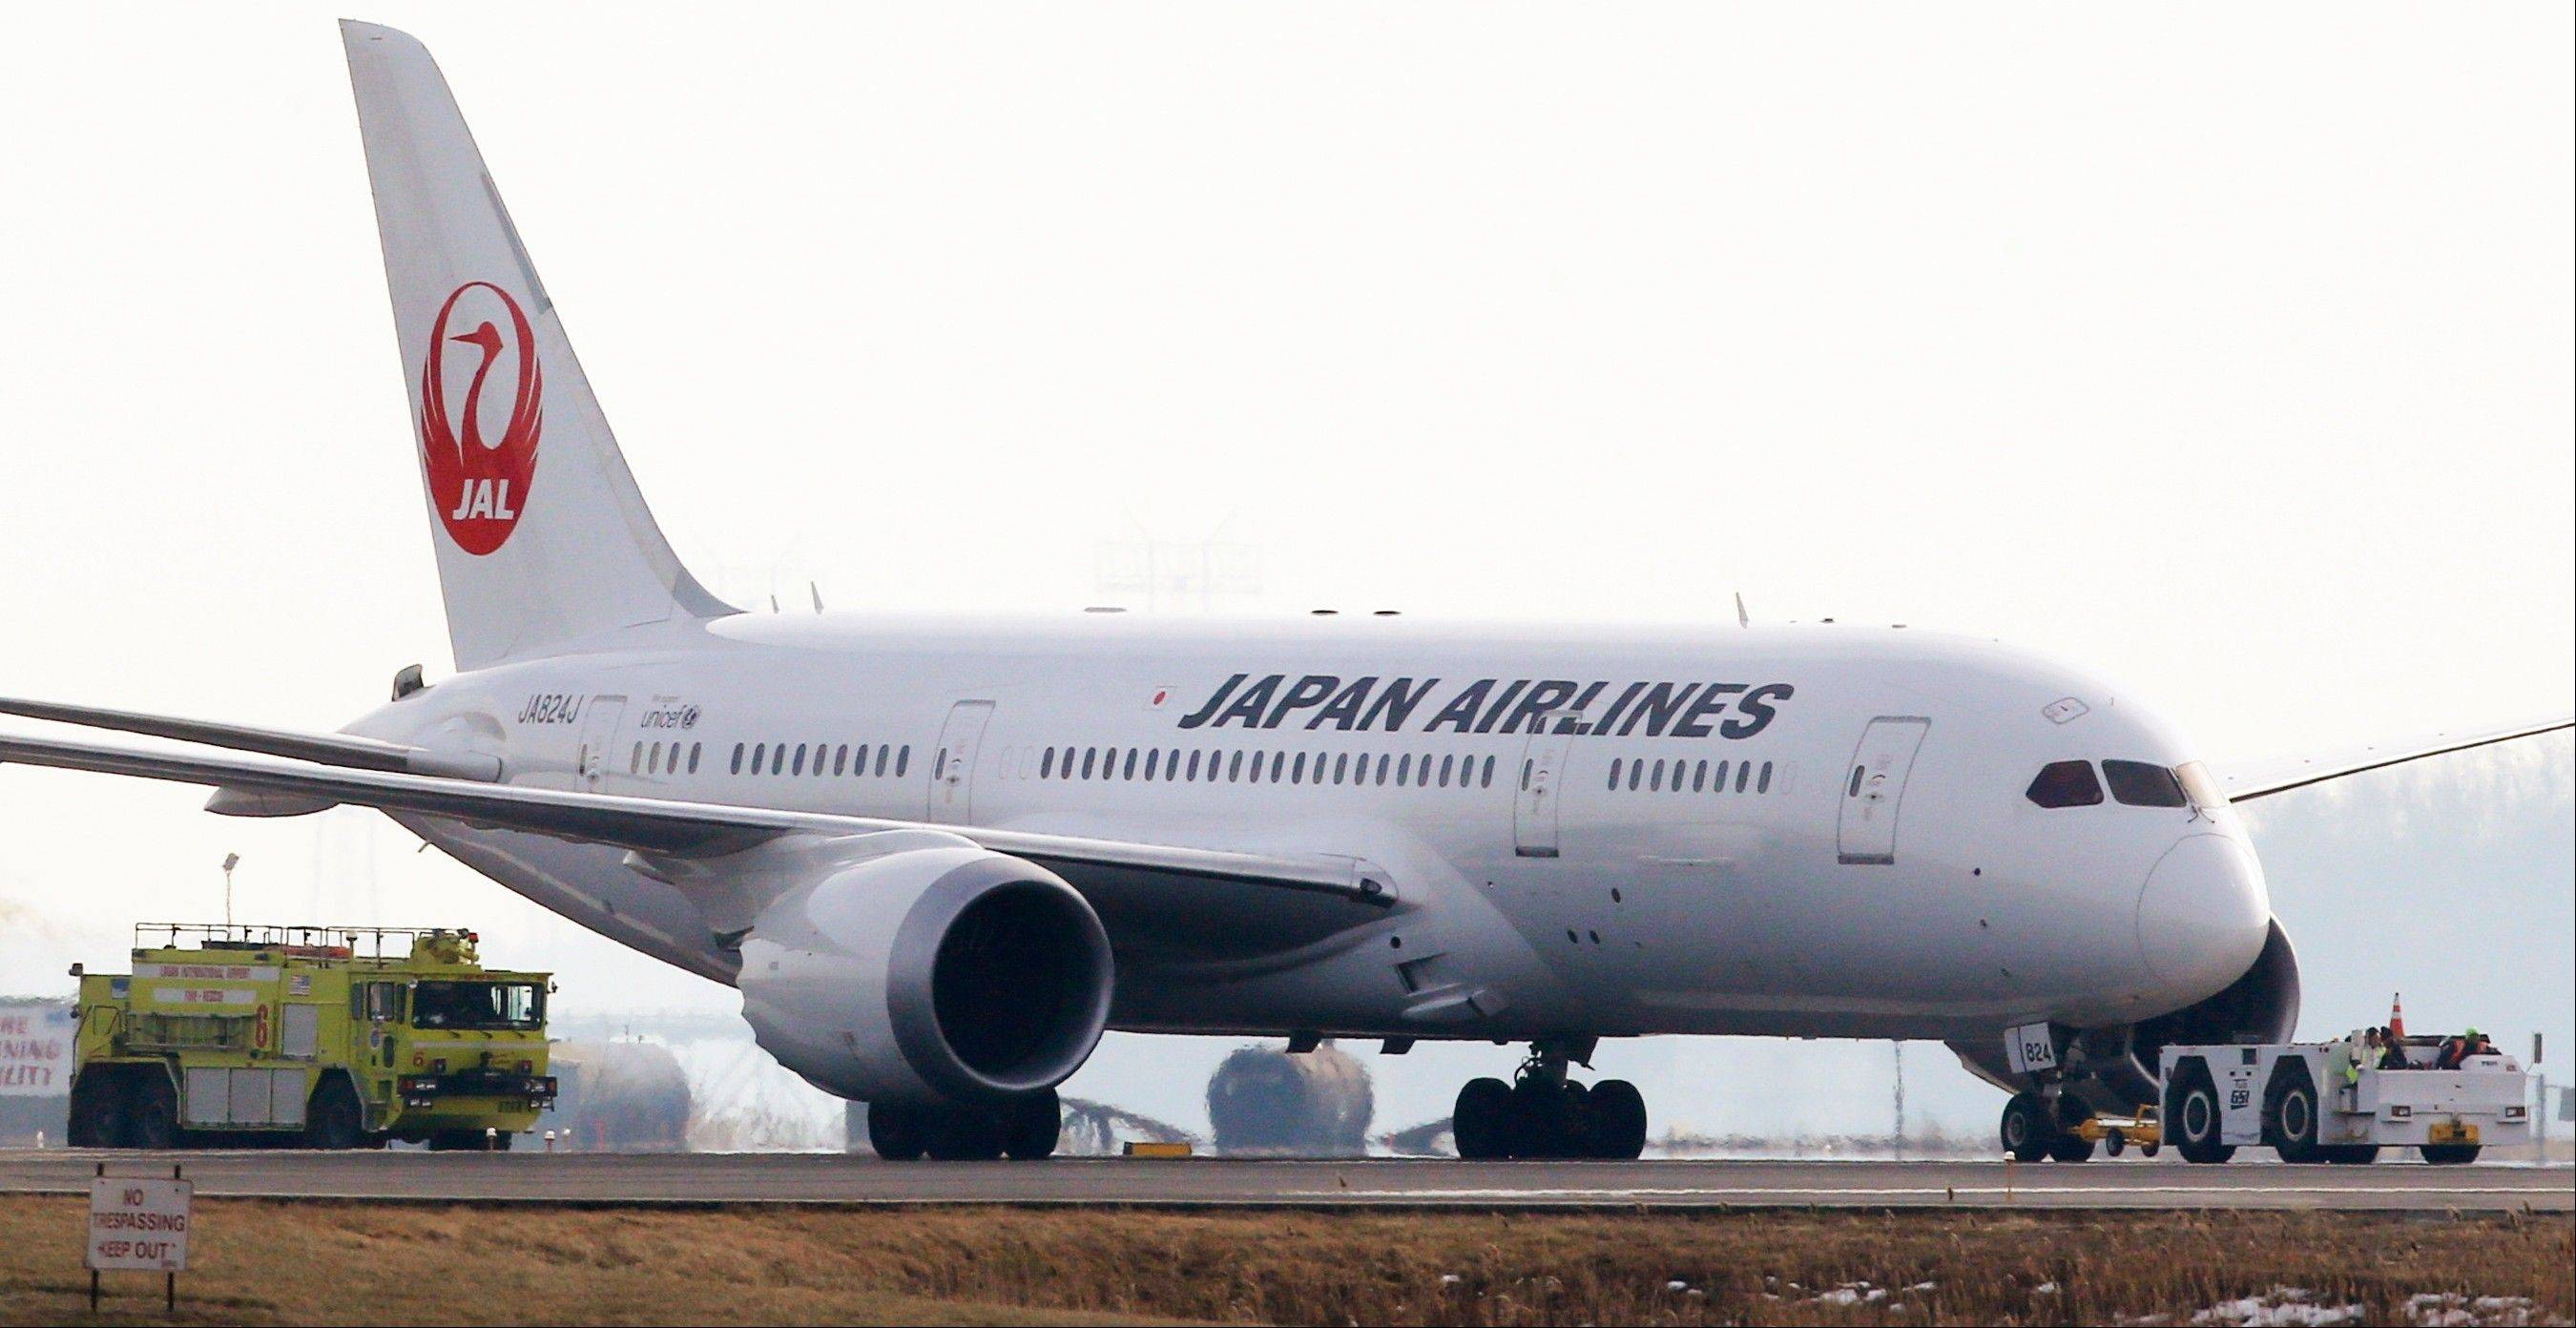 A Japan Airlines 787 is escorted by a fire engine as it is towed away from the runways at Logan Airport in Boston Tuesday. Officials say crews have contained a fuel leak from the outbound Japan Airlines flight to Tokyo in the second incident involving the airline at Logan in two days.